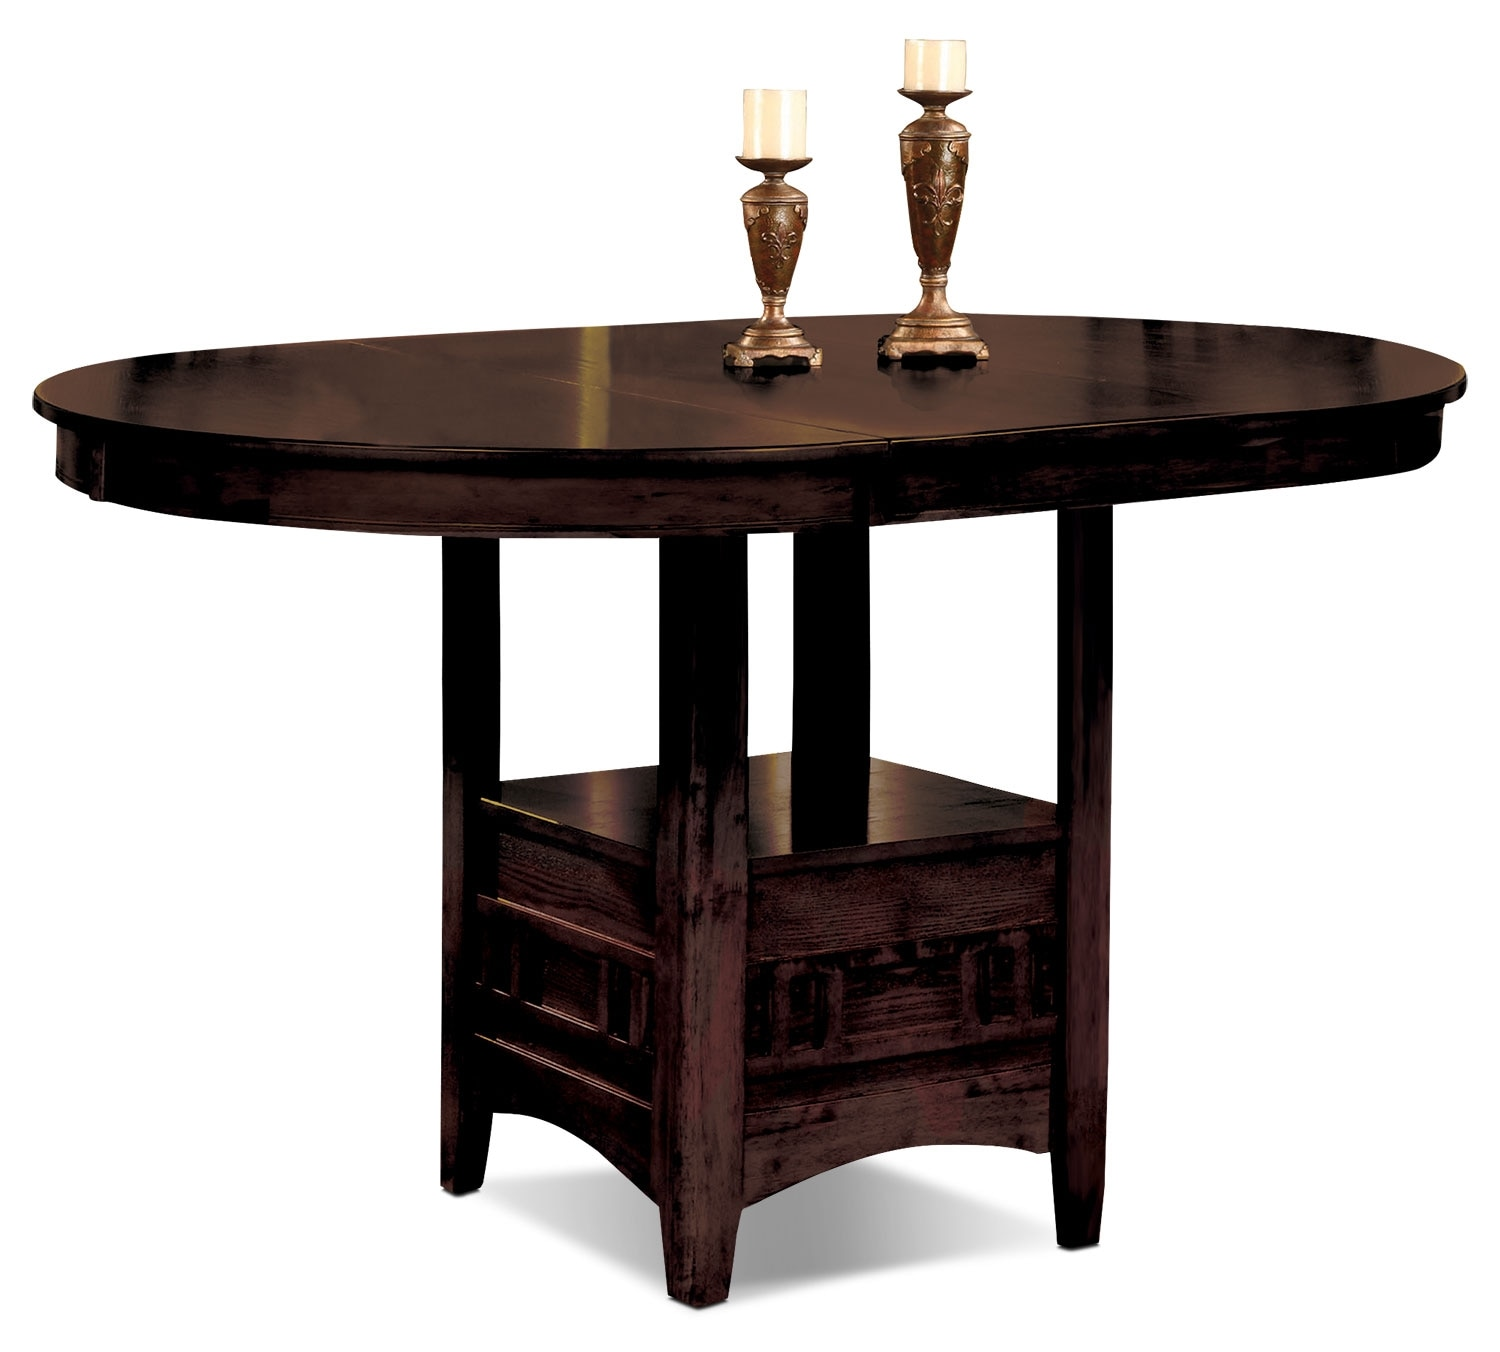 Dalton Chocolate Counter-Height Table